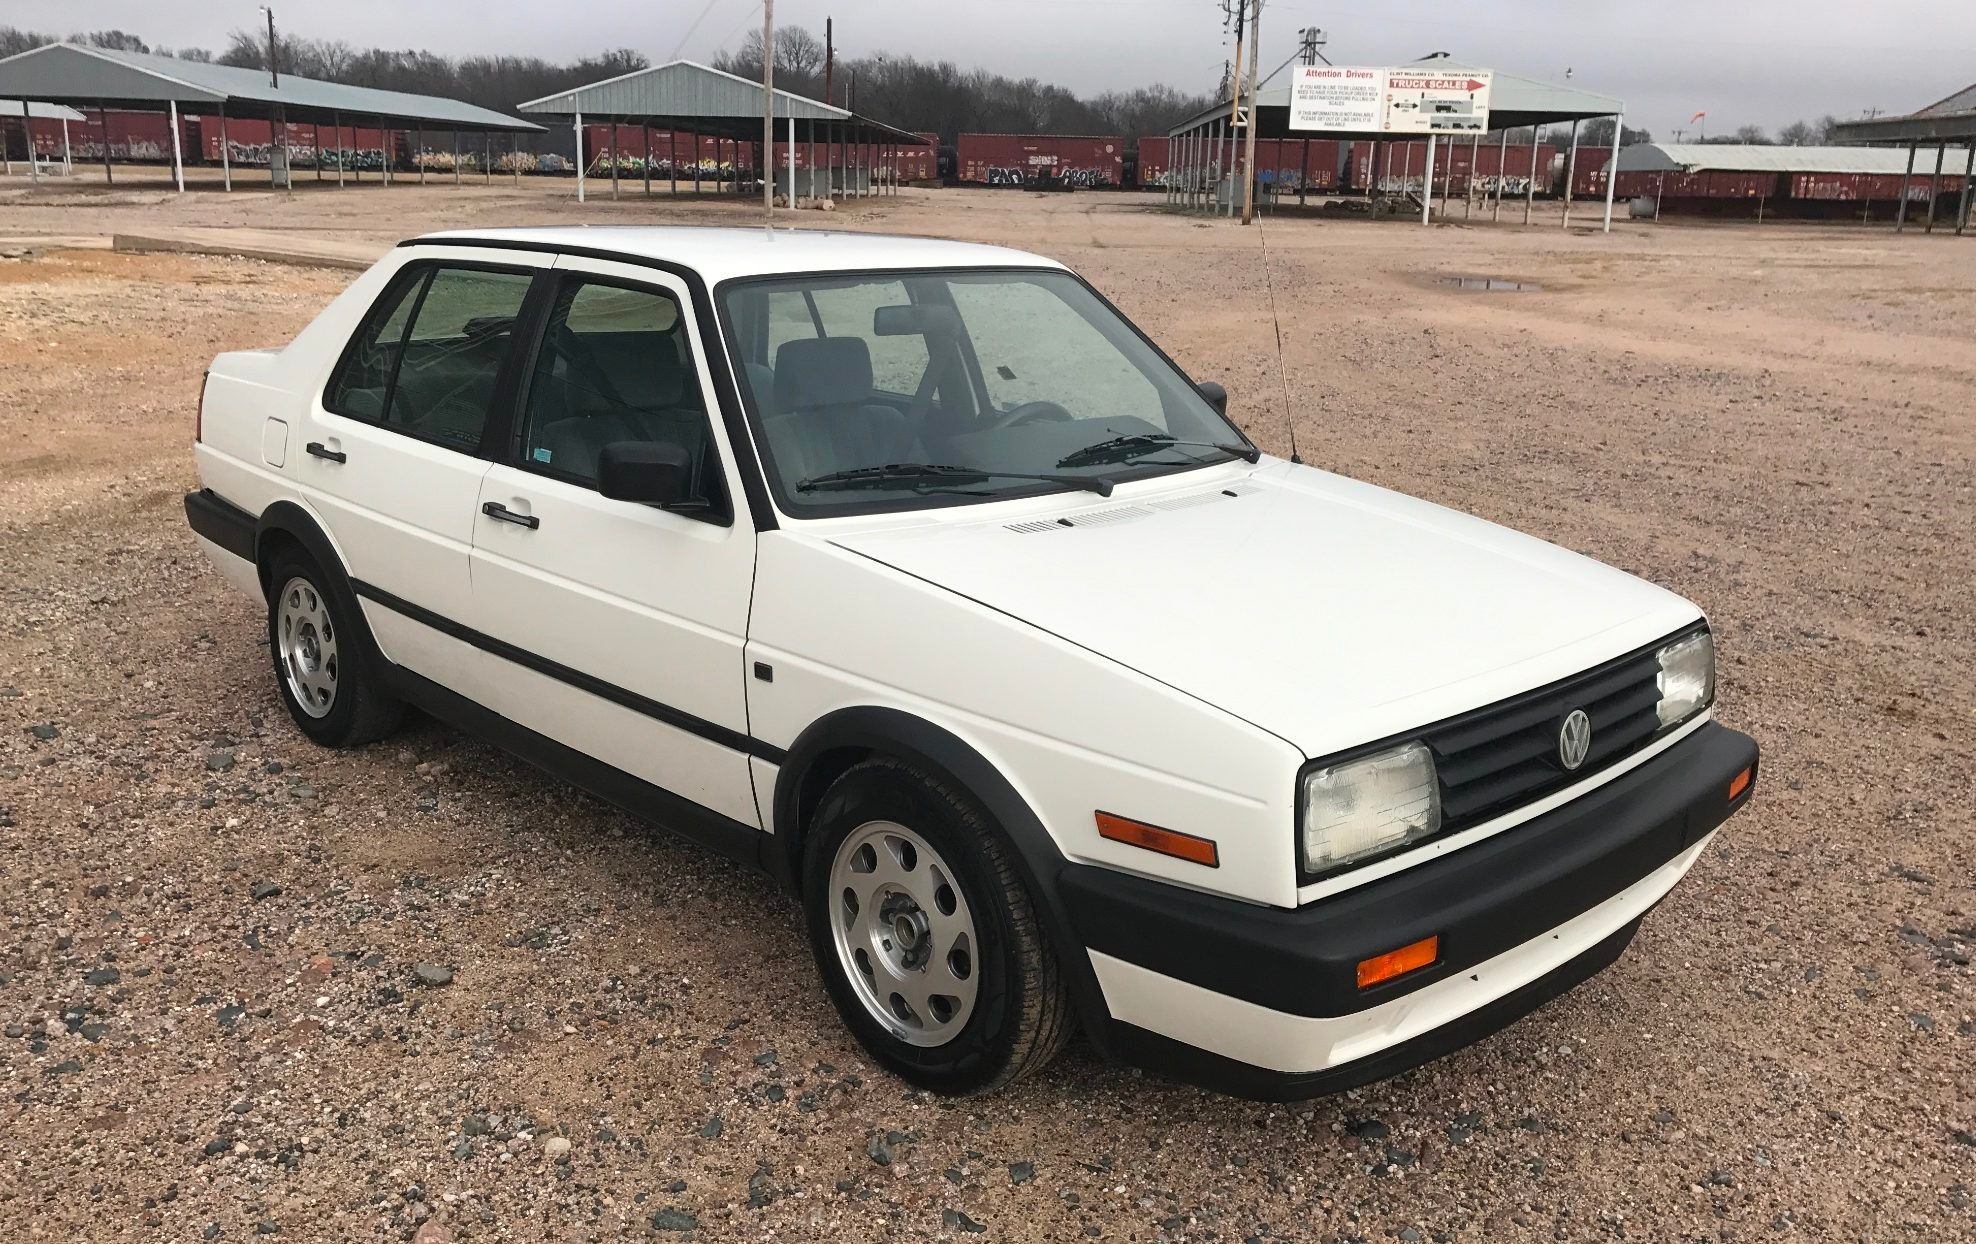 hight resolution of no reserve 1992 volkswagen jetta gl ecodiesel 5 speed for sale on bat auctions sold for 5 500 on january 19 2018 lot 7 761 bring a trailer